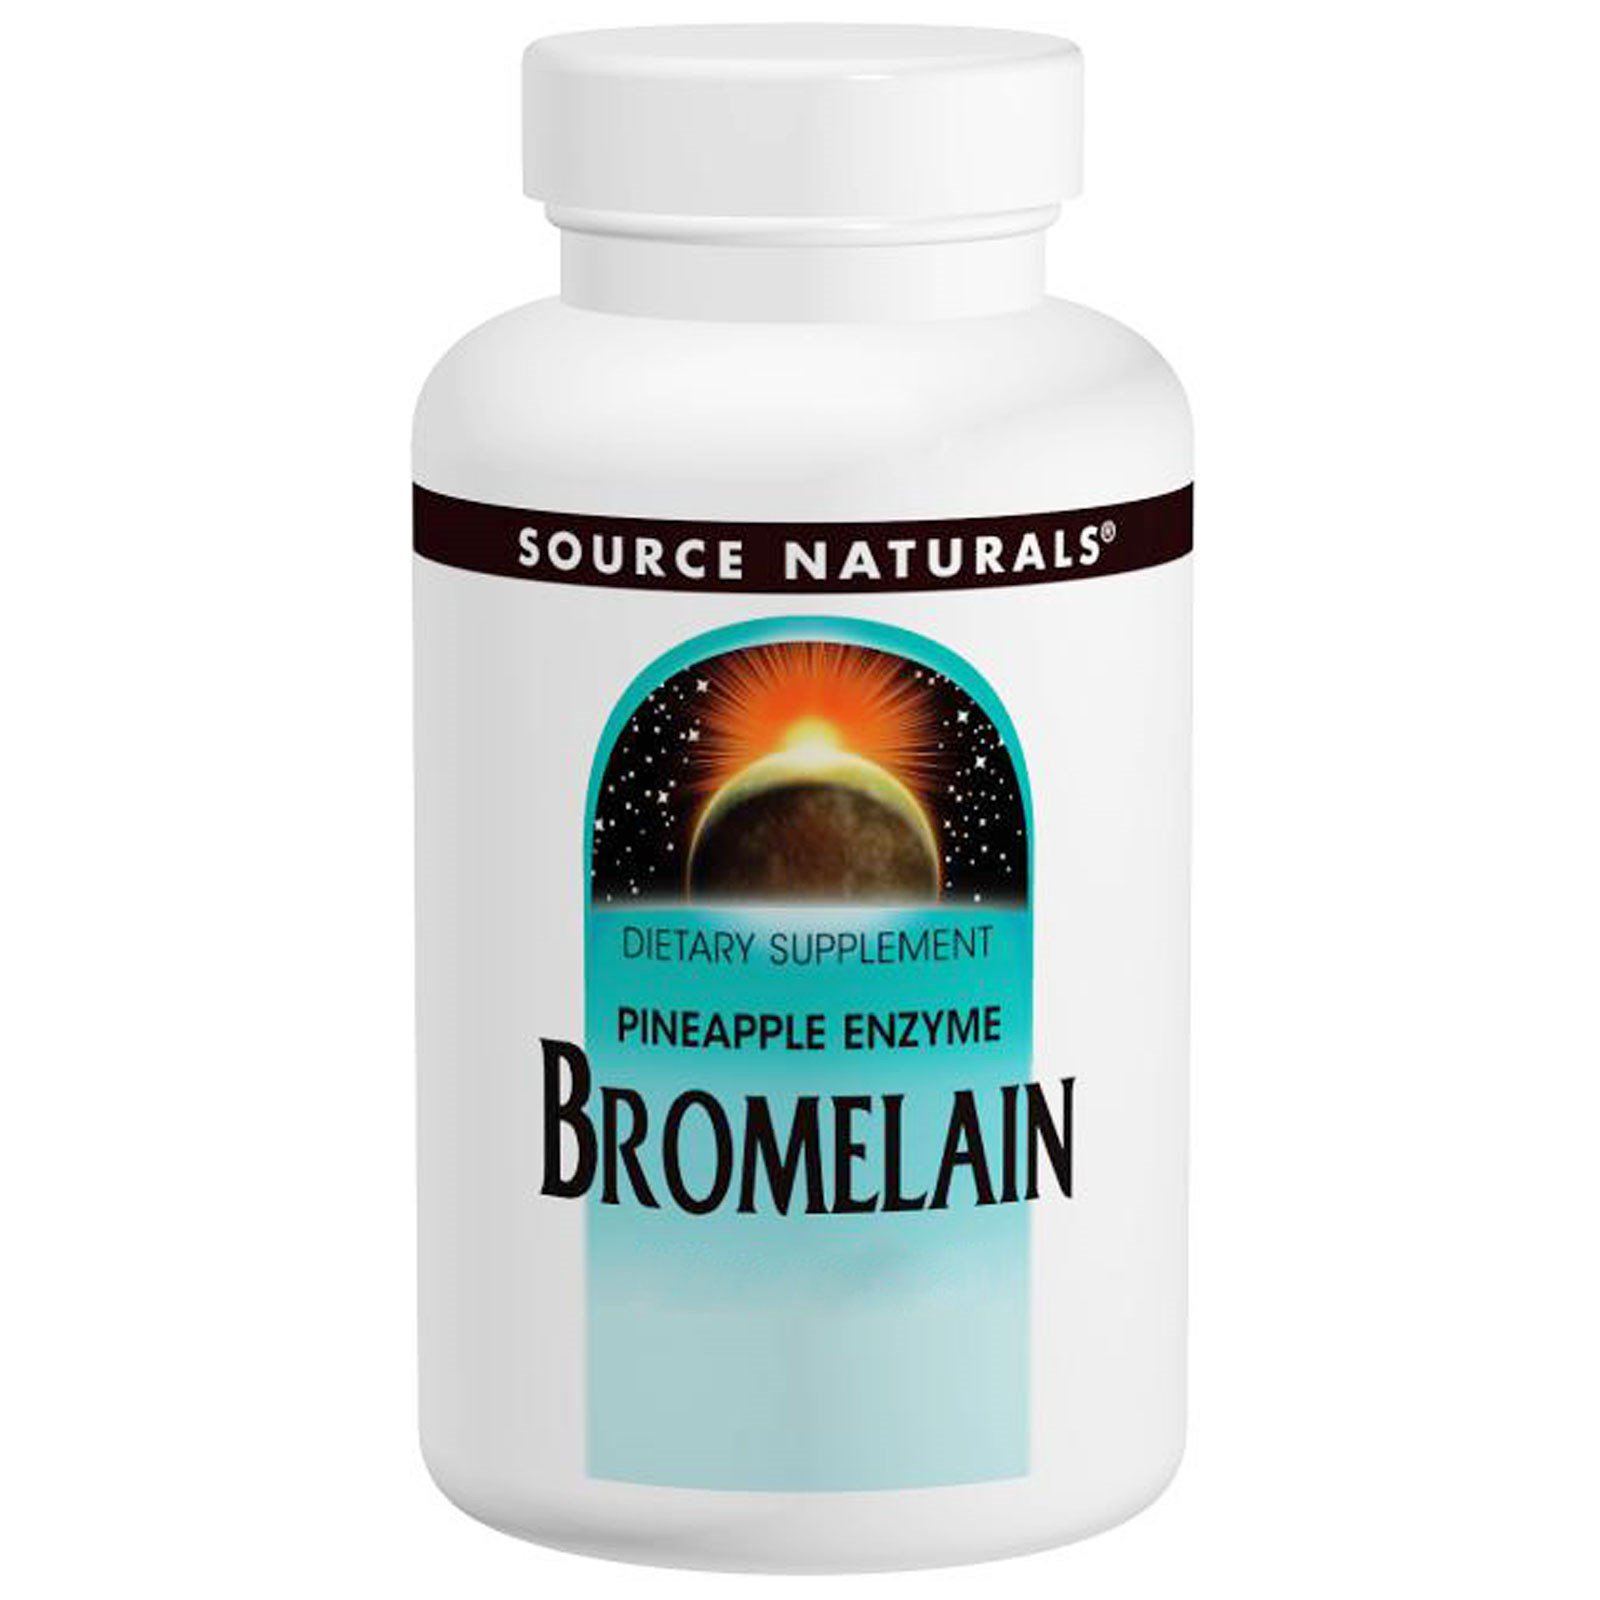 bromelain Bromelain bromelain is a food supplement that may provide an alternative treatment to nsaids for patients with osteoarthritis bromelain is a crude, aqueous extract obtained from both the stem and fruit of the pineapple plant, which contains a number of proteolytic enzymes (10,11) and has shown potentially beneficial effects due to its anti-inflammatory and analgesic properties.